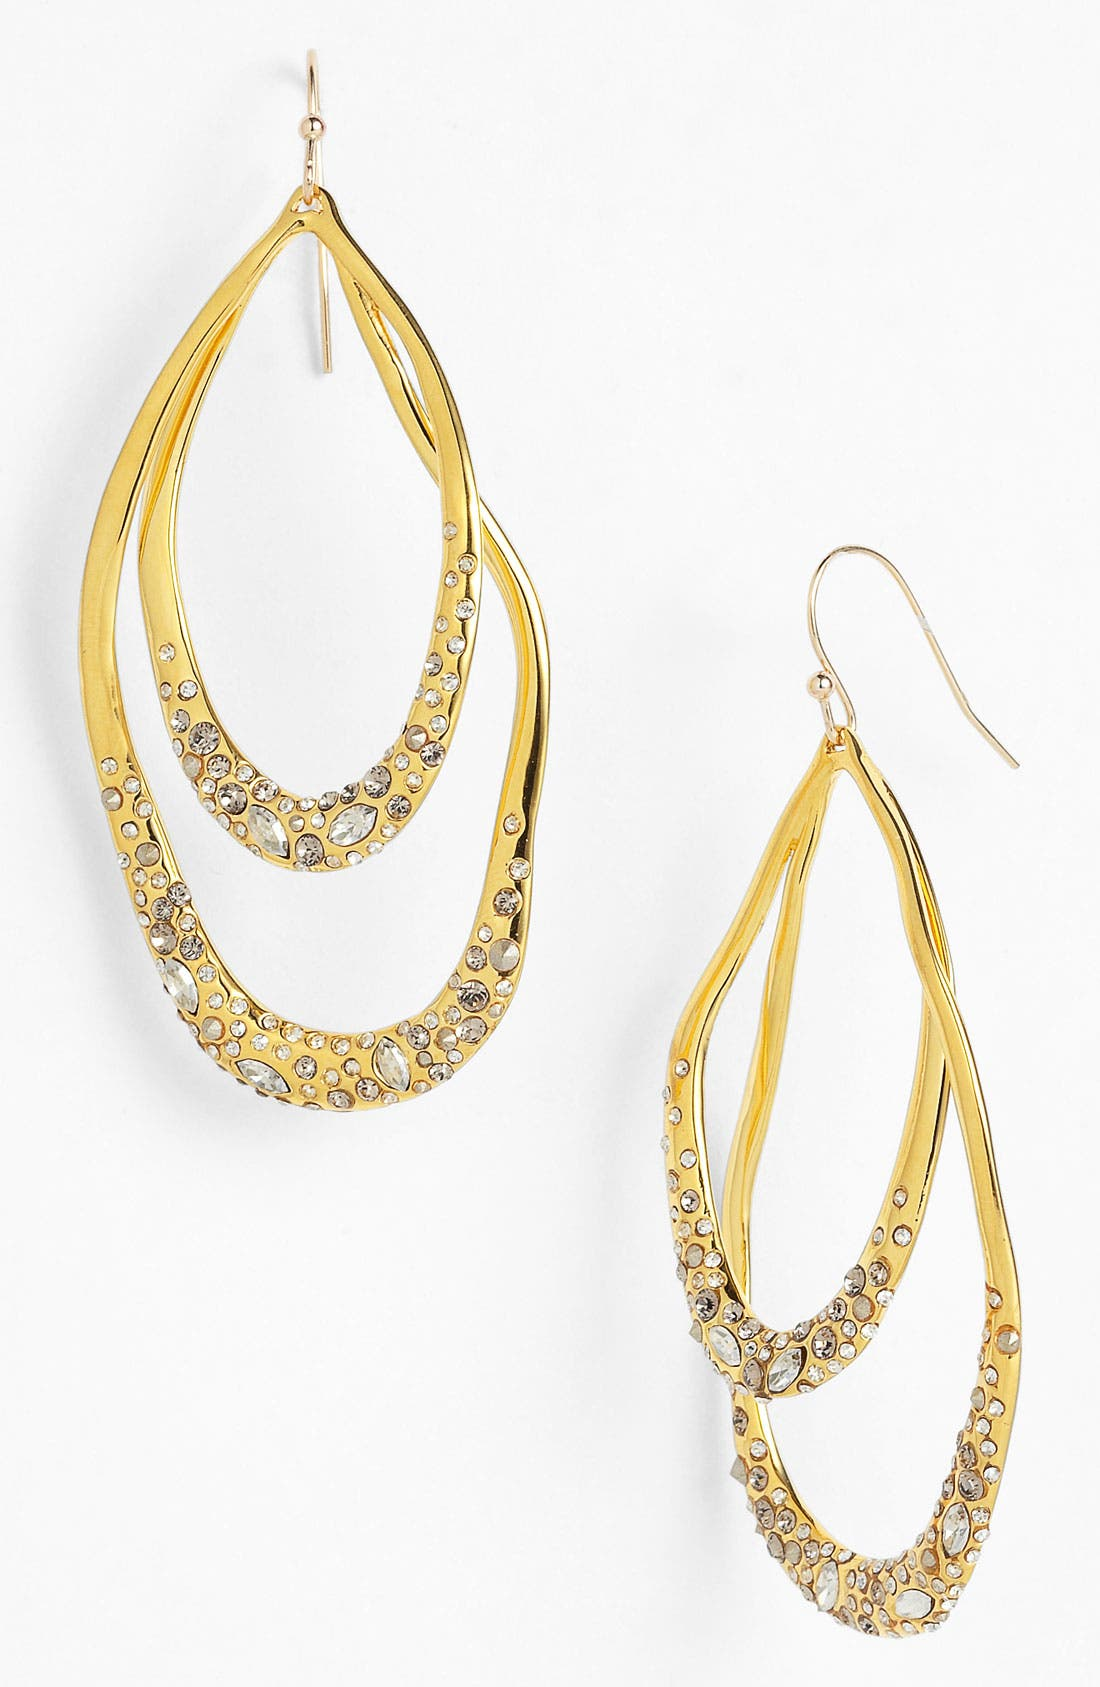 Main Image - Alexis Bittar 'Miss Havisham - Orbiting' Teardrop Earrings